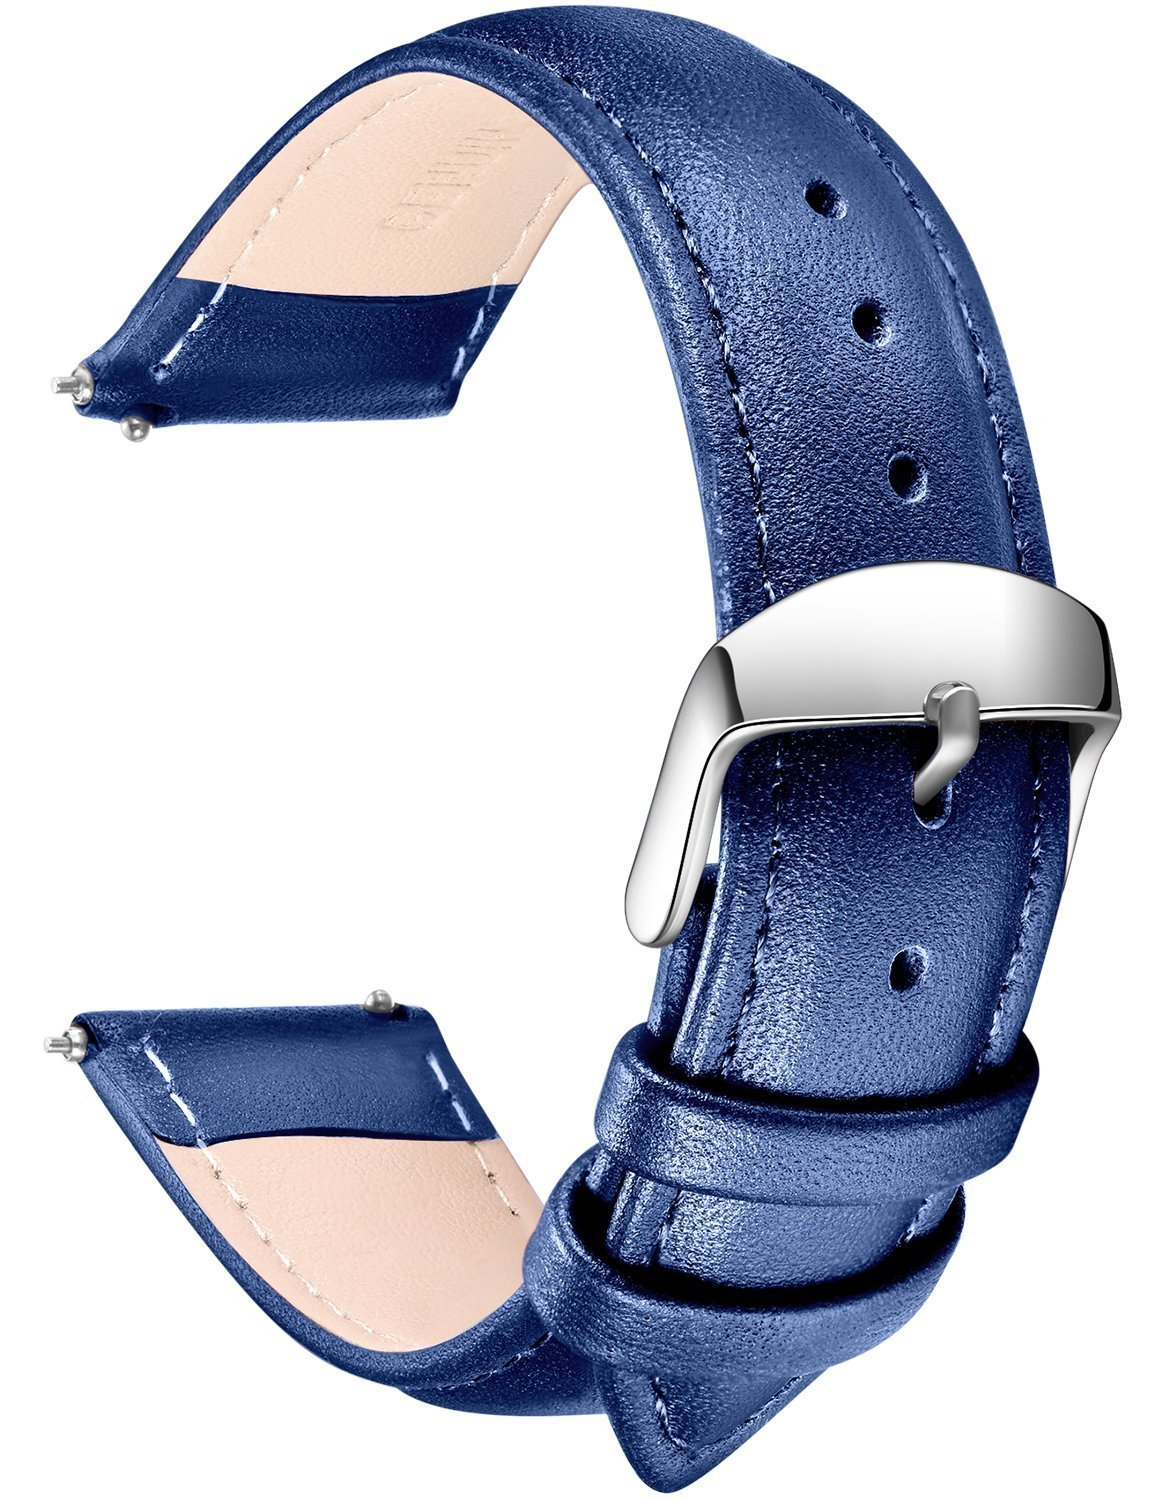 SONGDU Quick Release Leather Watch Band, Full Grain Genuine Leather Replacement Watch Strap with Stainless Metal Buckle Clasp 16mm, 18mm, 20mm, 22mm, 24mm (20mm, Blue)